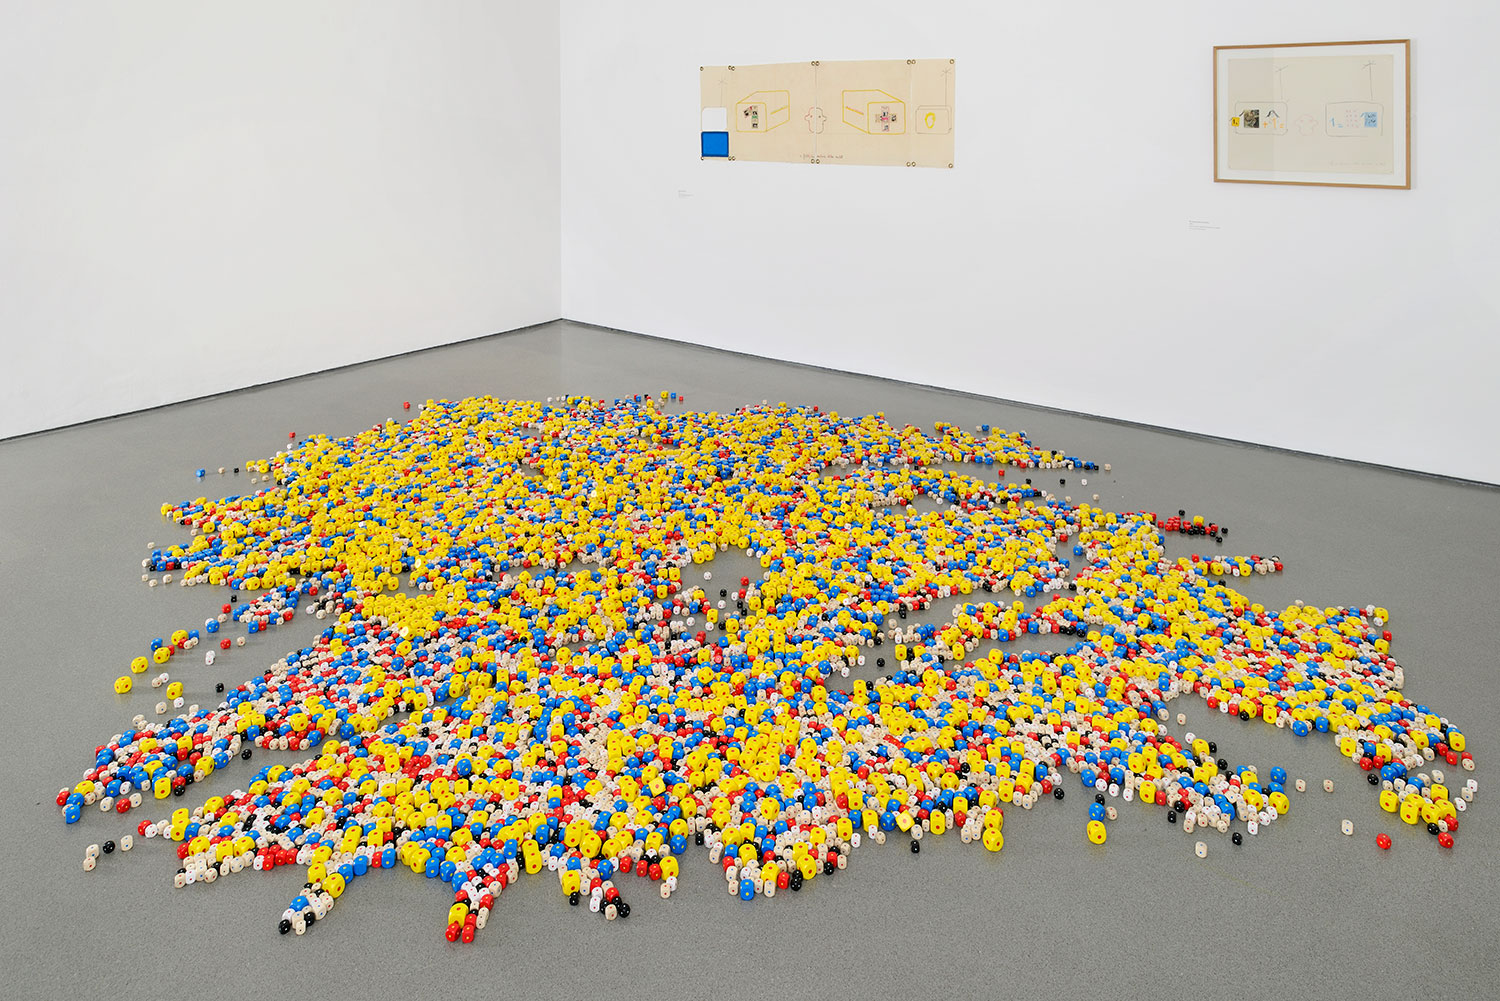 Installation view of Gallery 3, showing 'Eins. Un. One.' (1984, 16,000 painted wooden cubes) 2